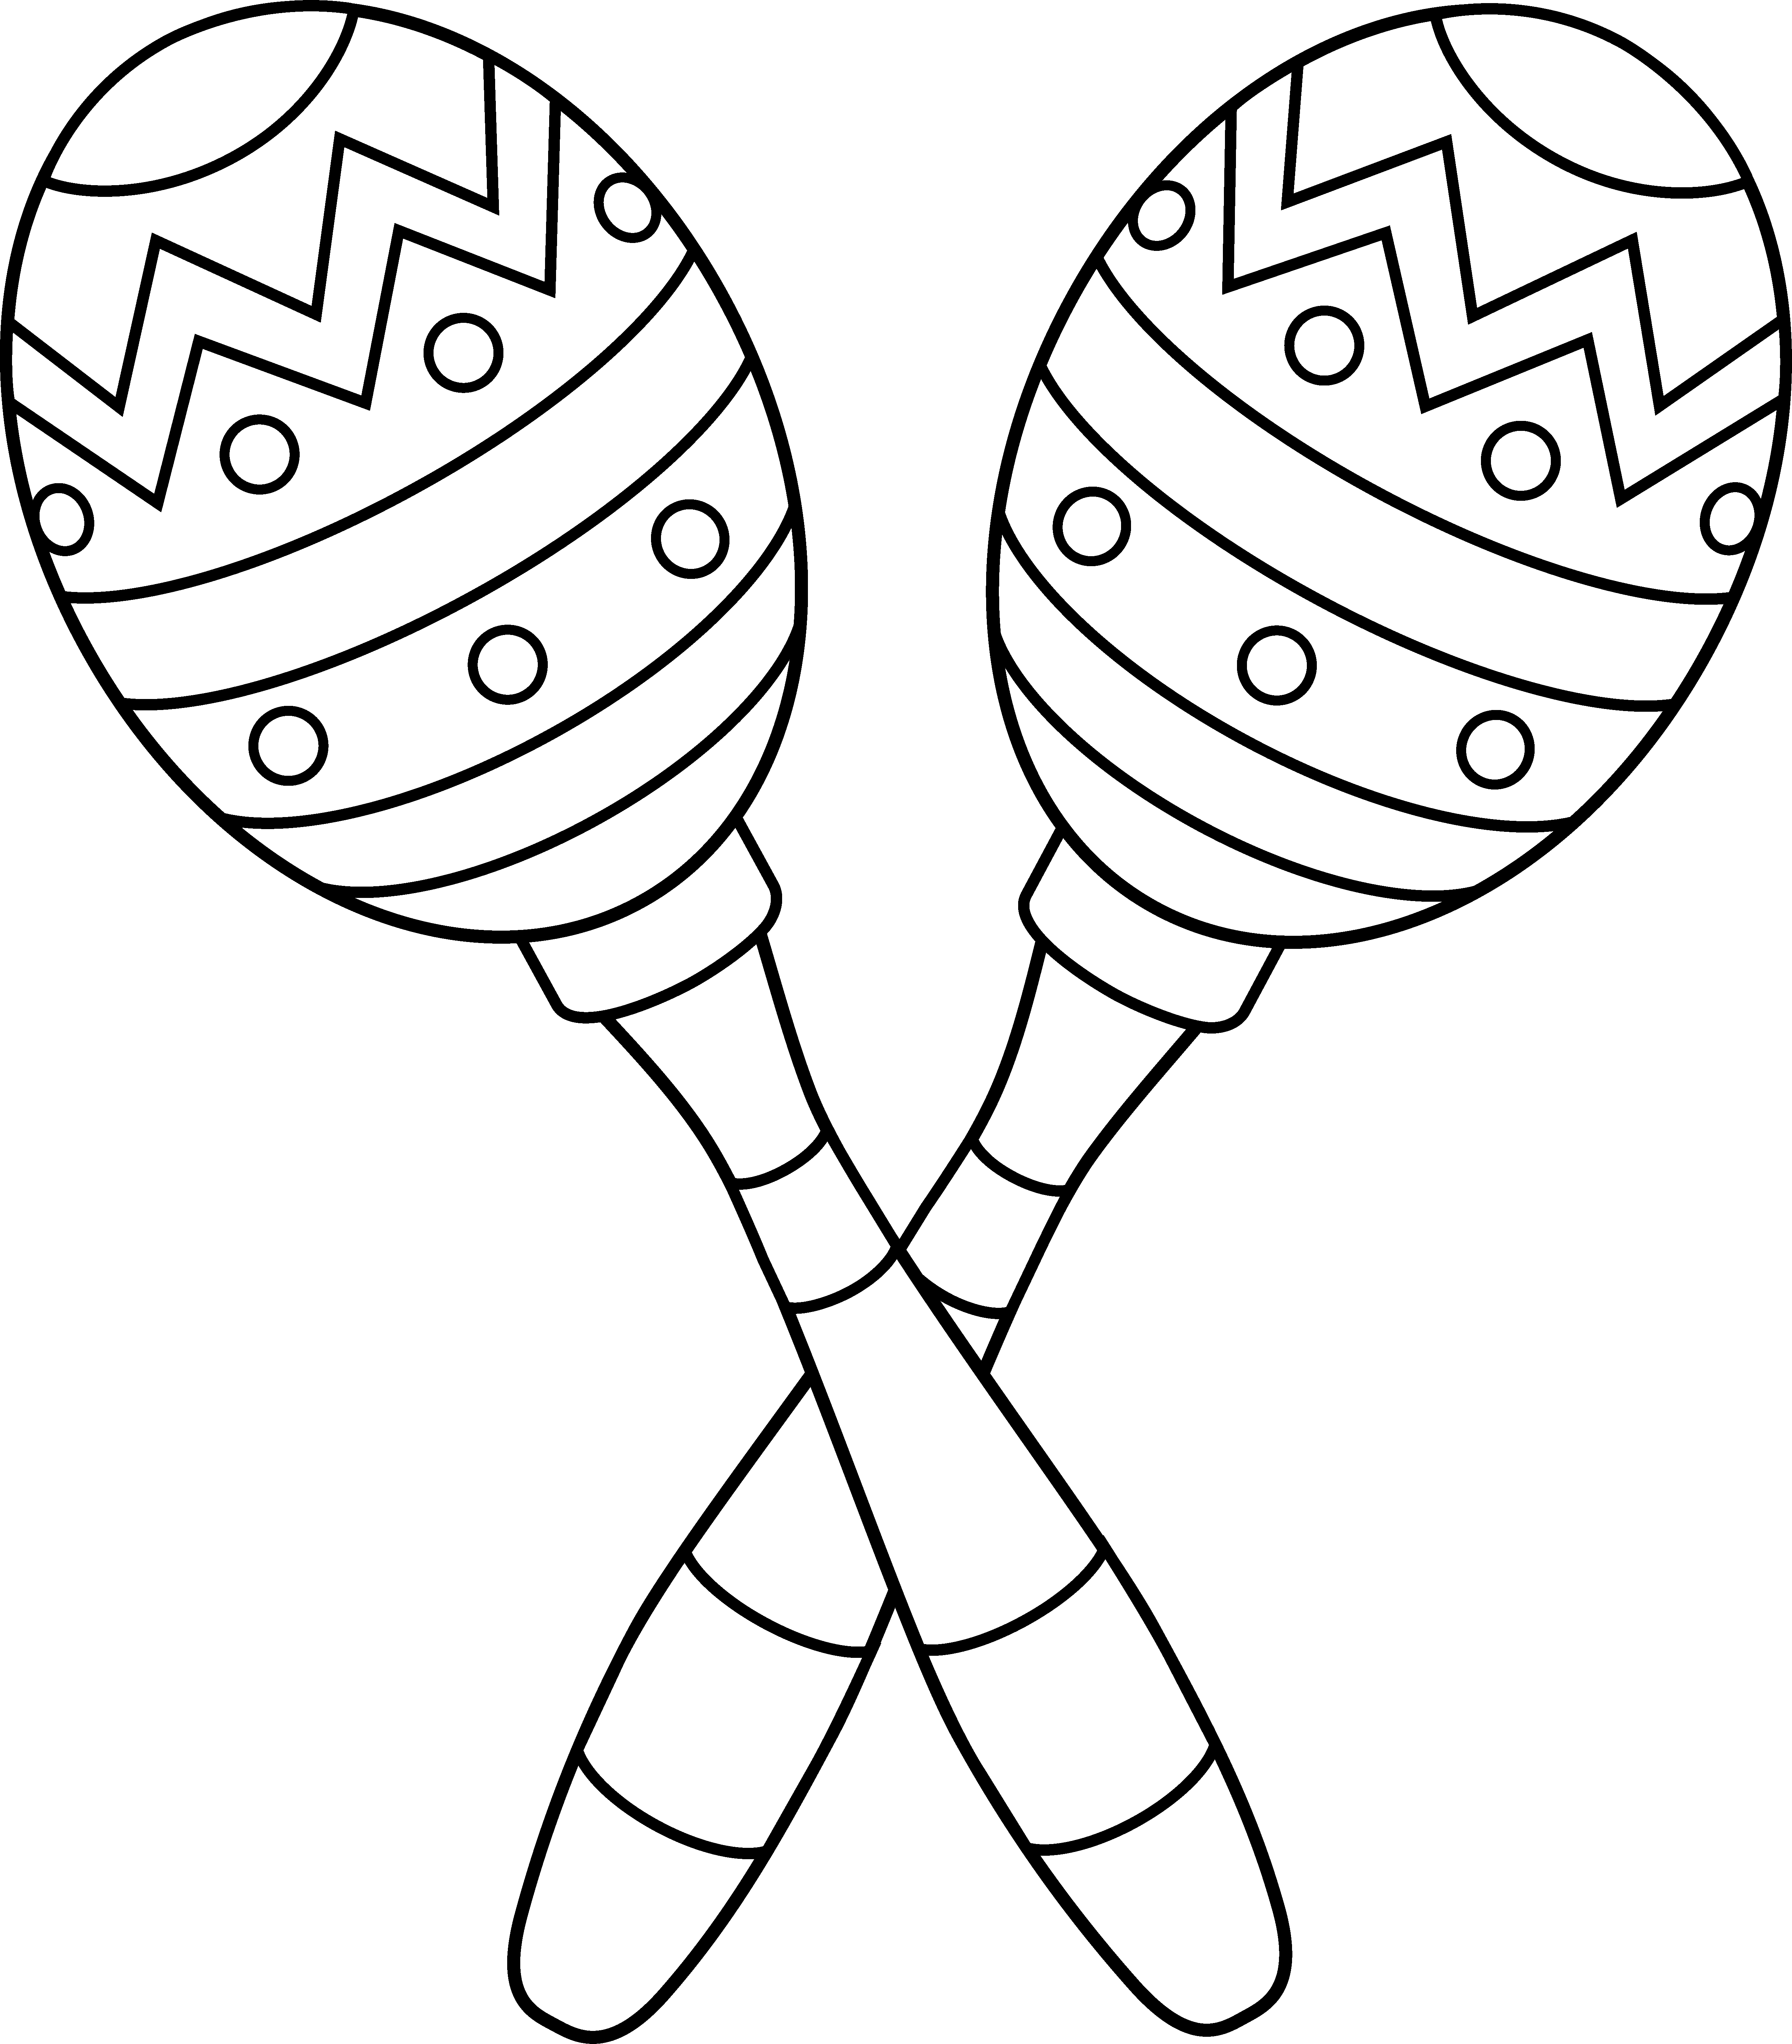 Two line art free. Maracas drawing transparent download